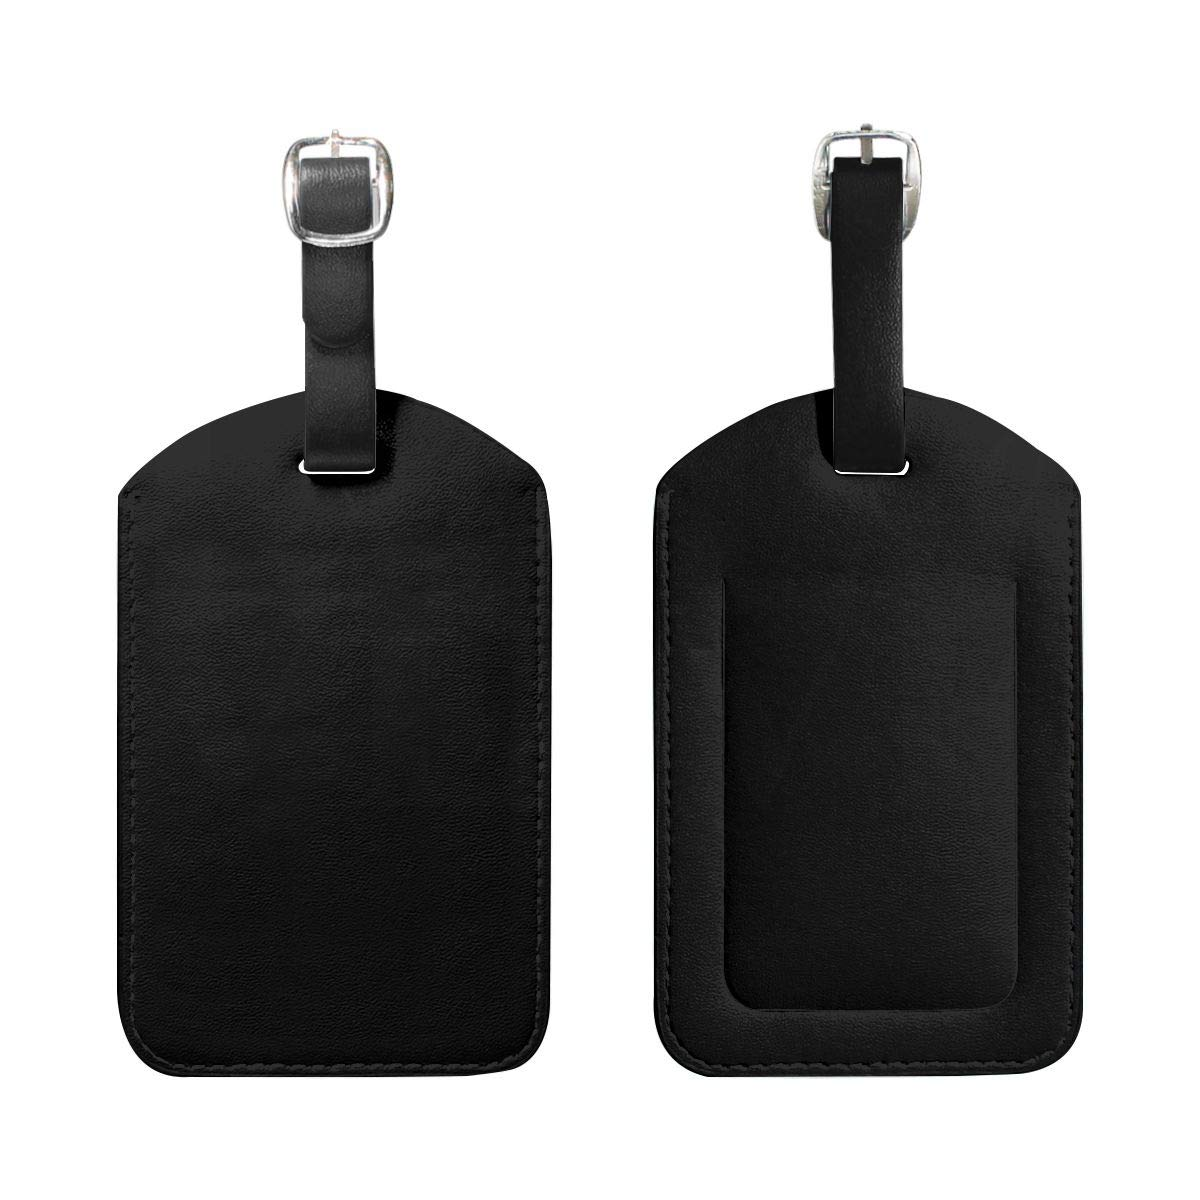 PU Leather Pack Luggage Tag Label Suitcase Tags For Men And Women Stop Loss Of Suitcases